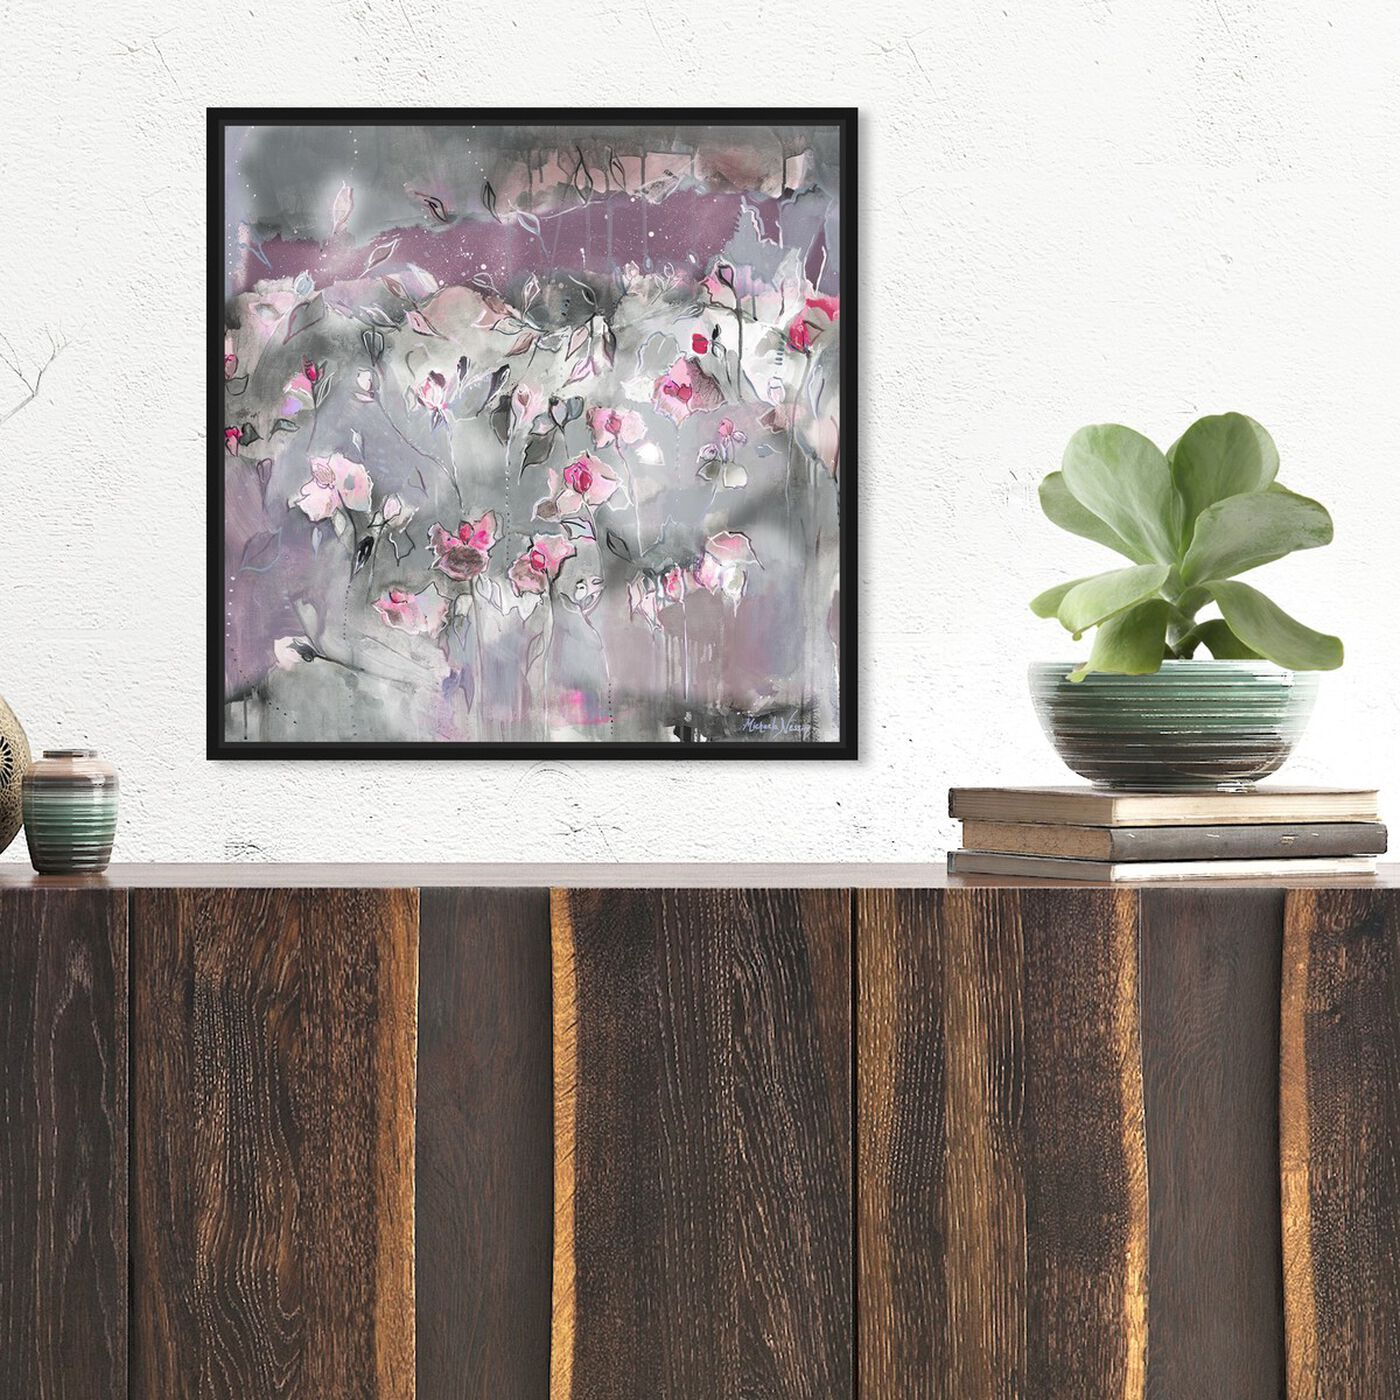 Hanging view of Subtle Radiance Light by Michaela Nessim featuring abstract and flowers art.